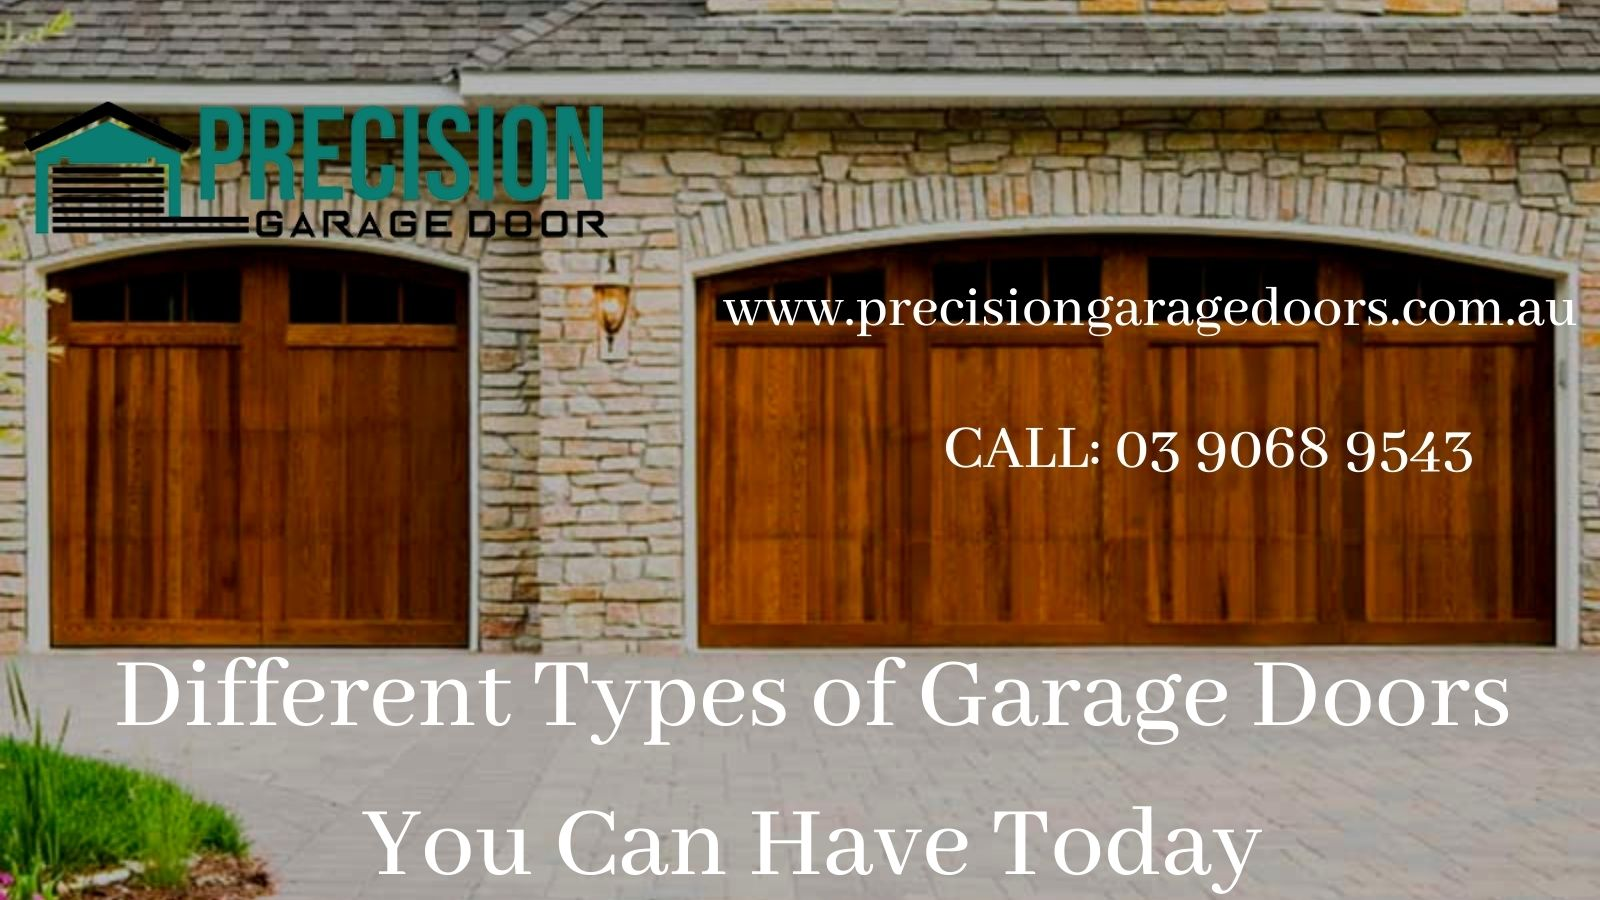 Different Types of Garage Doors You Can Have Today